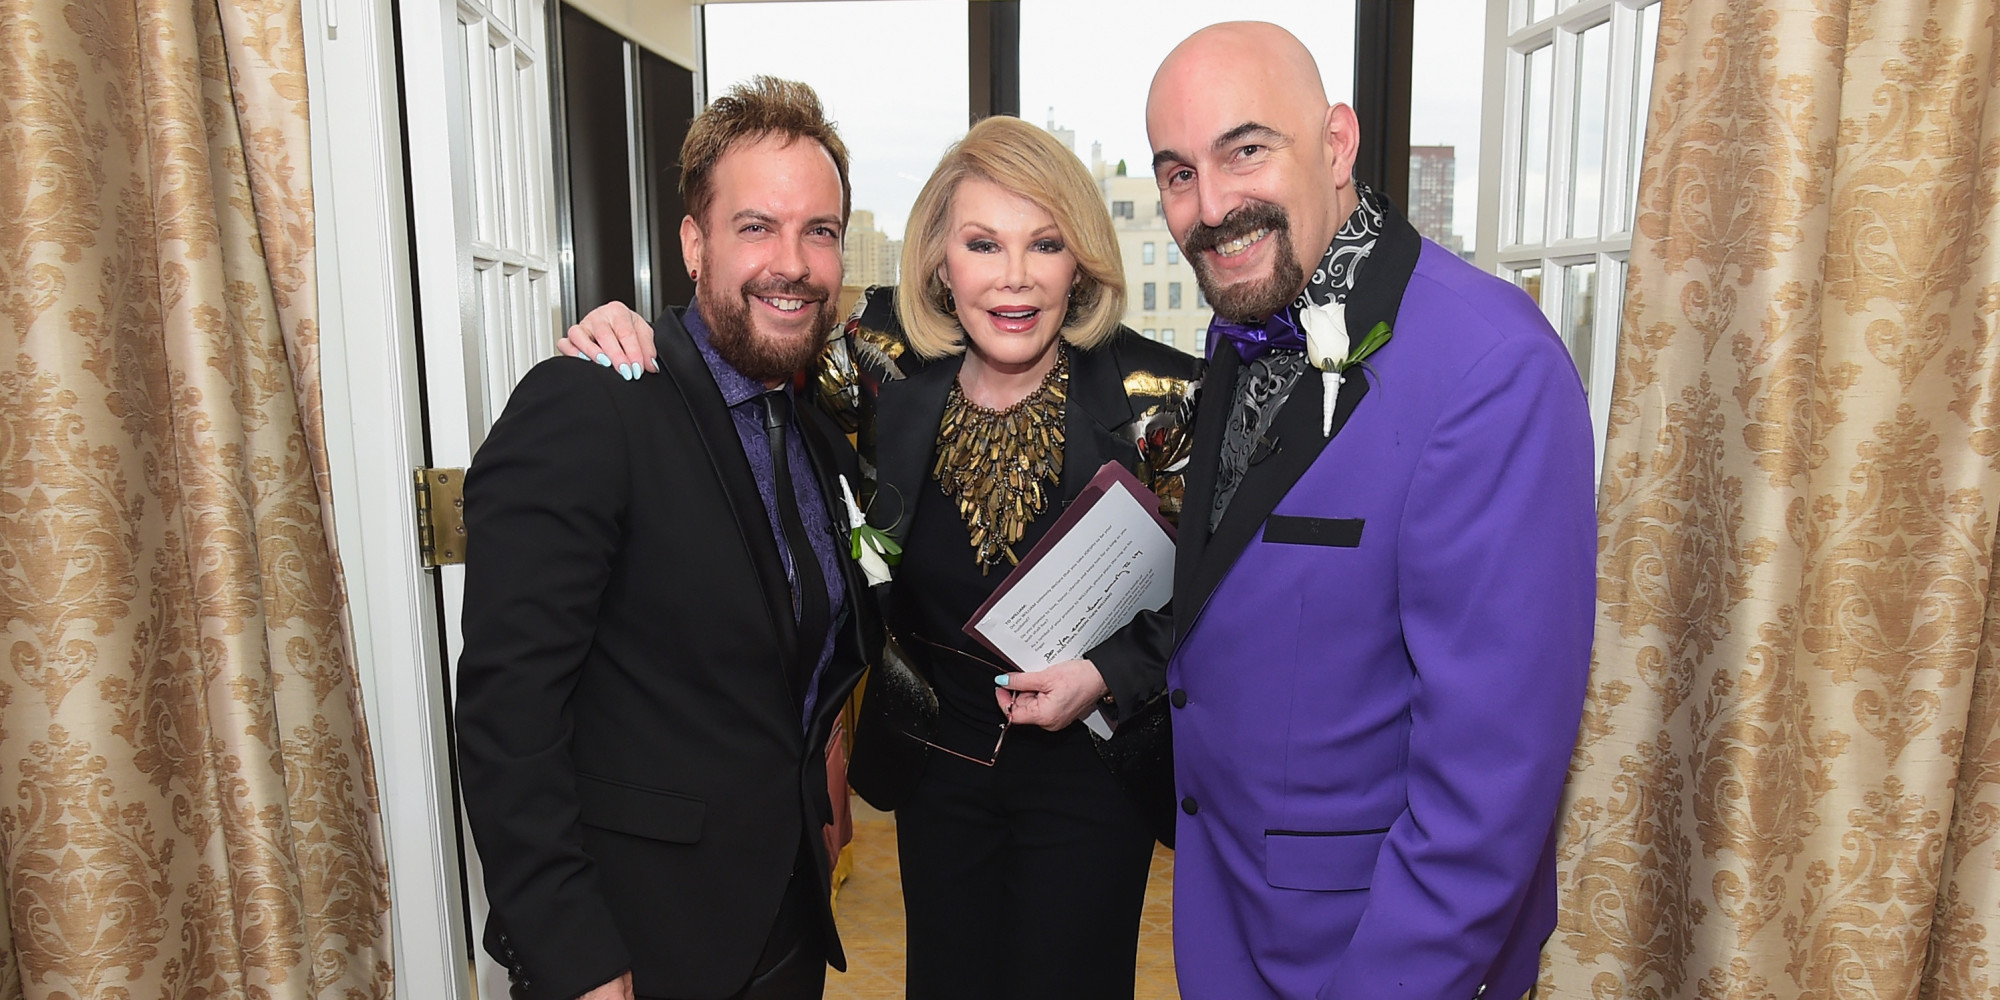 Joan Rivers Marries Gay Couple In New York For The Second Time PHOTOS